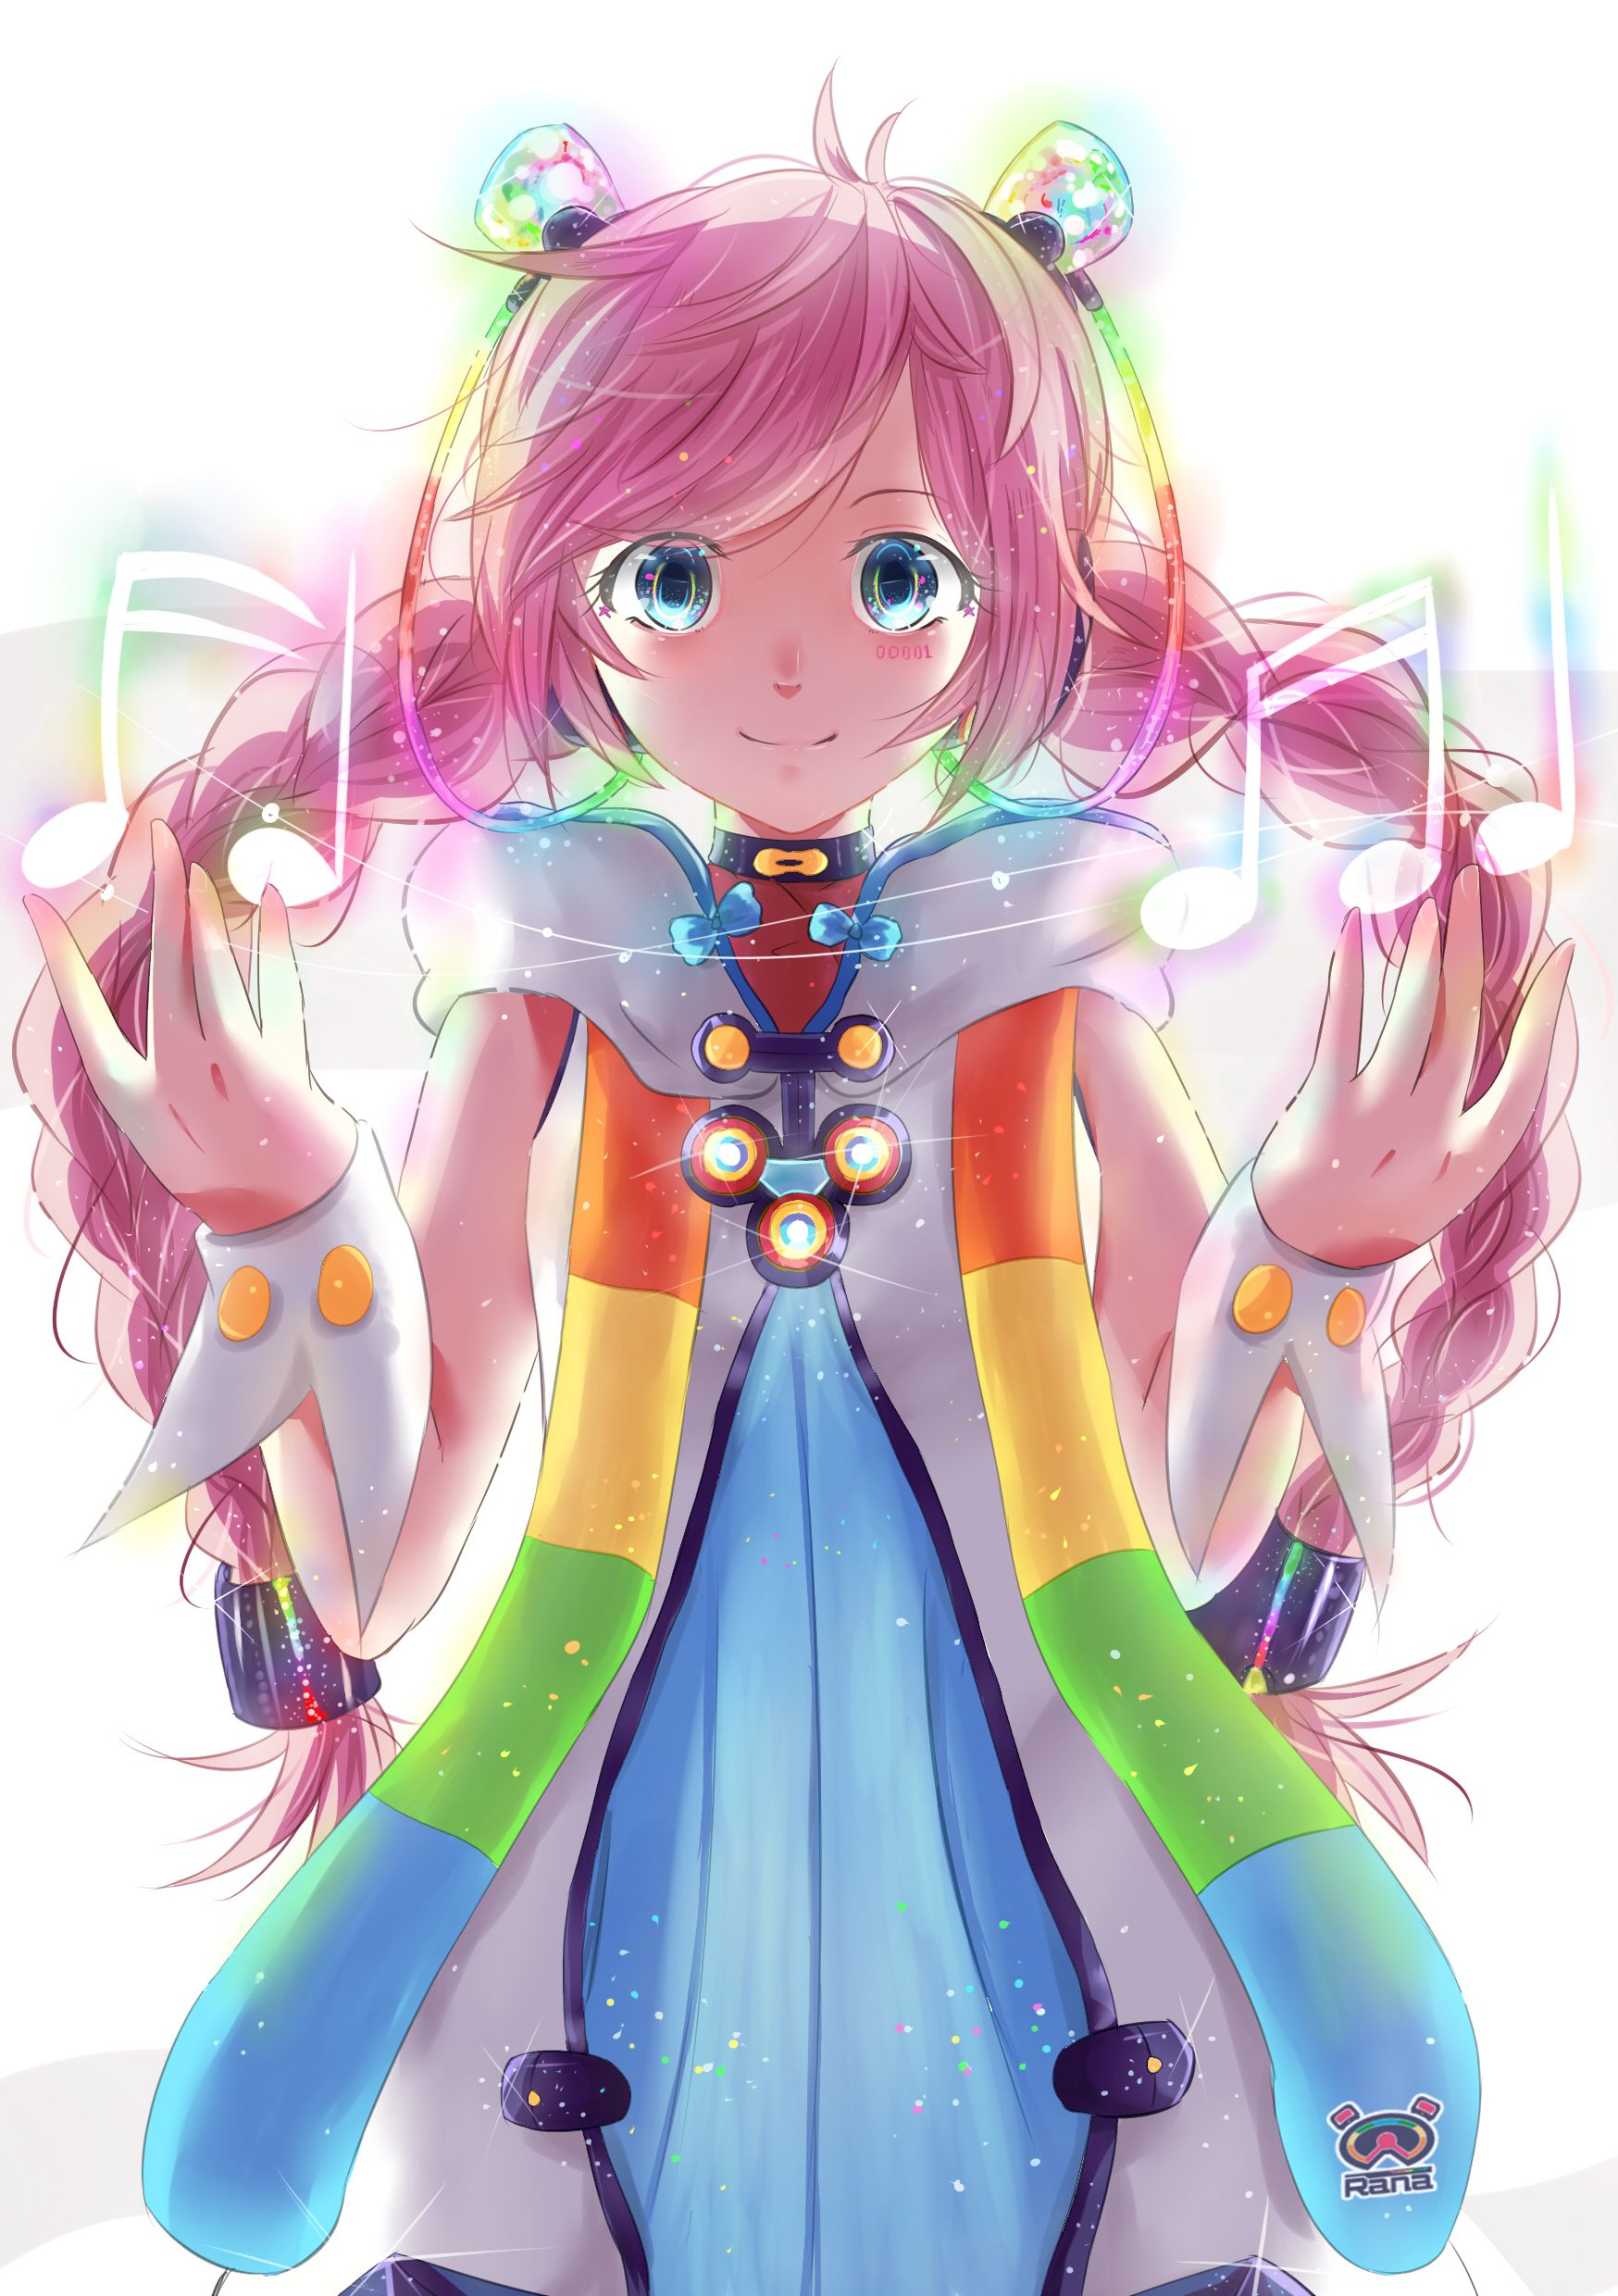 Rana. A very underrated Vocaloid, her voice and her